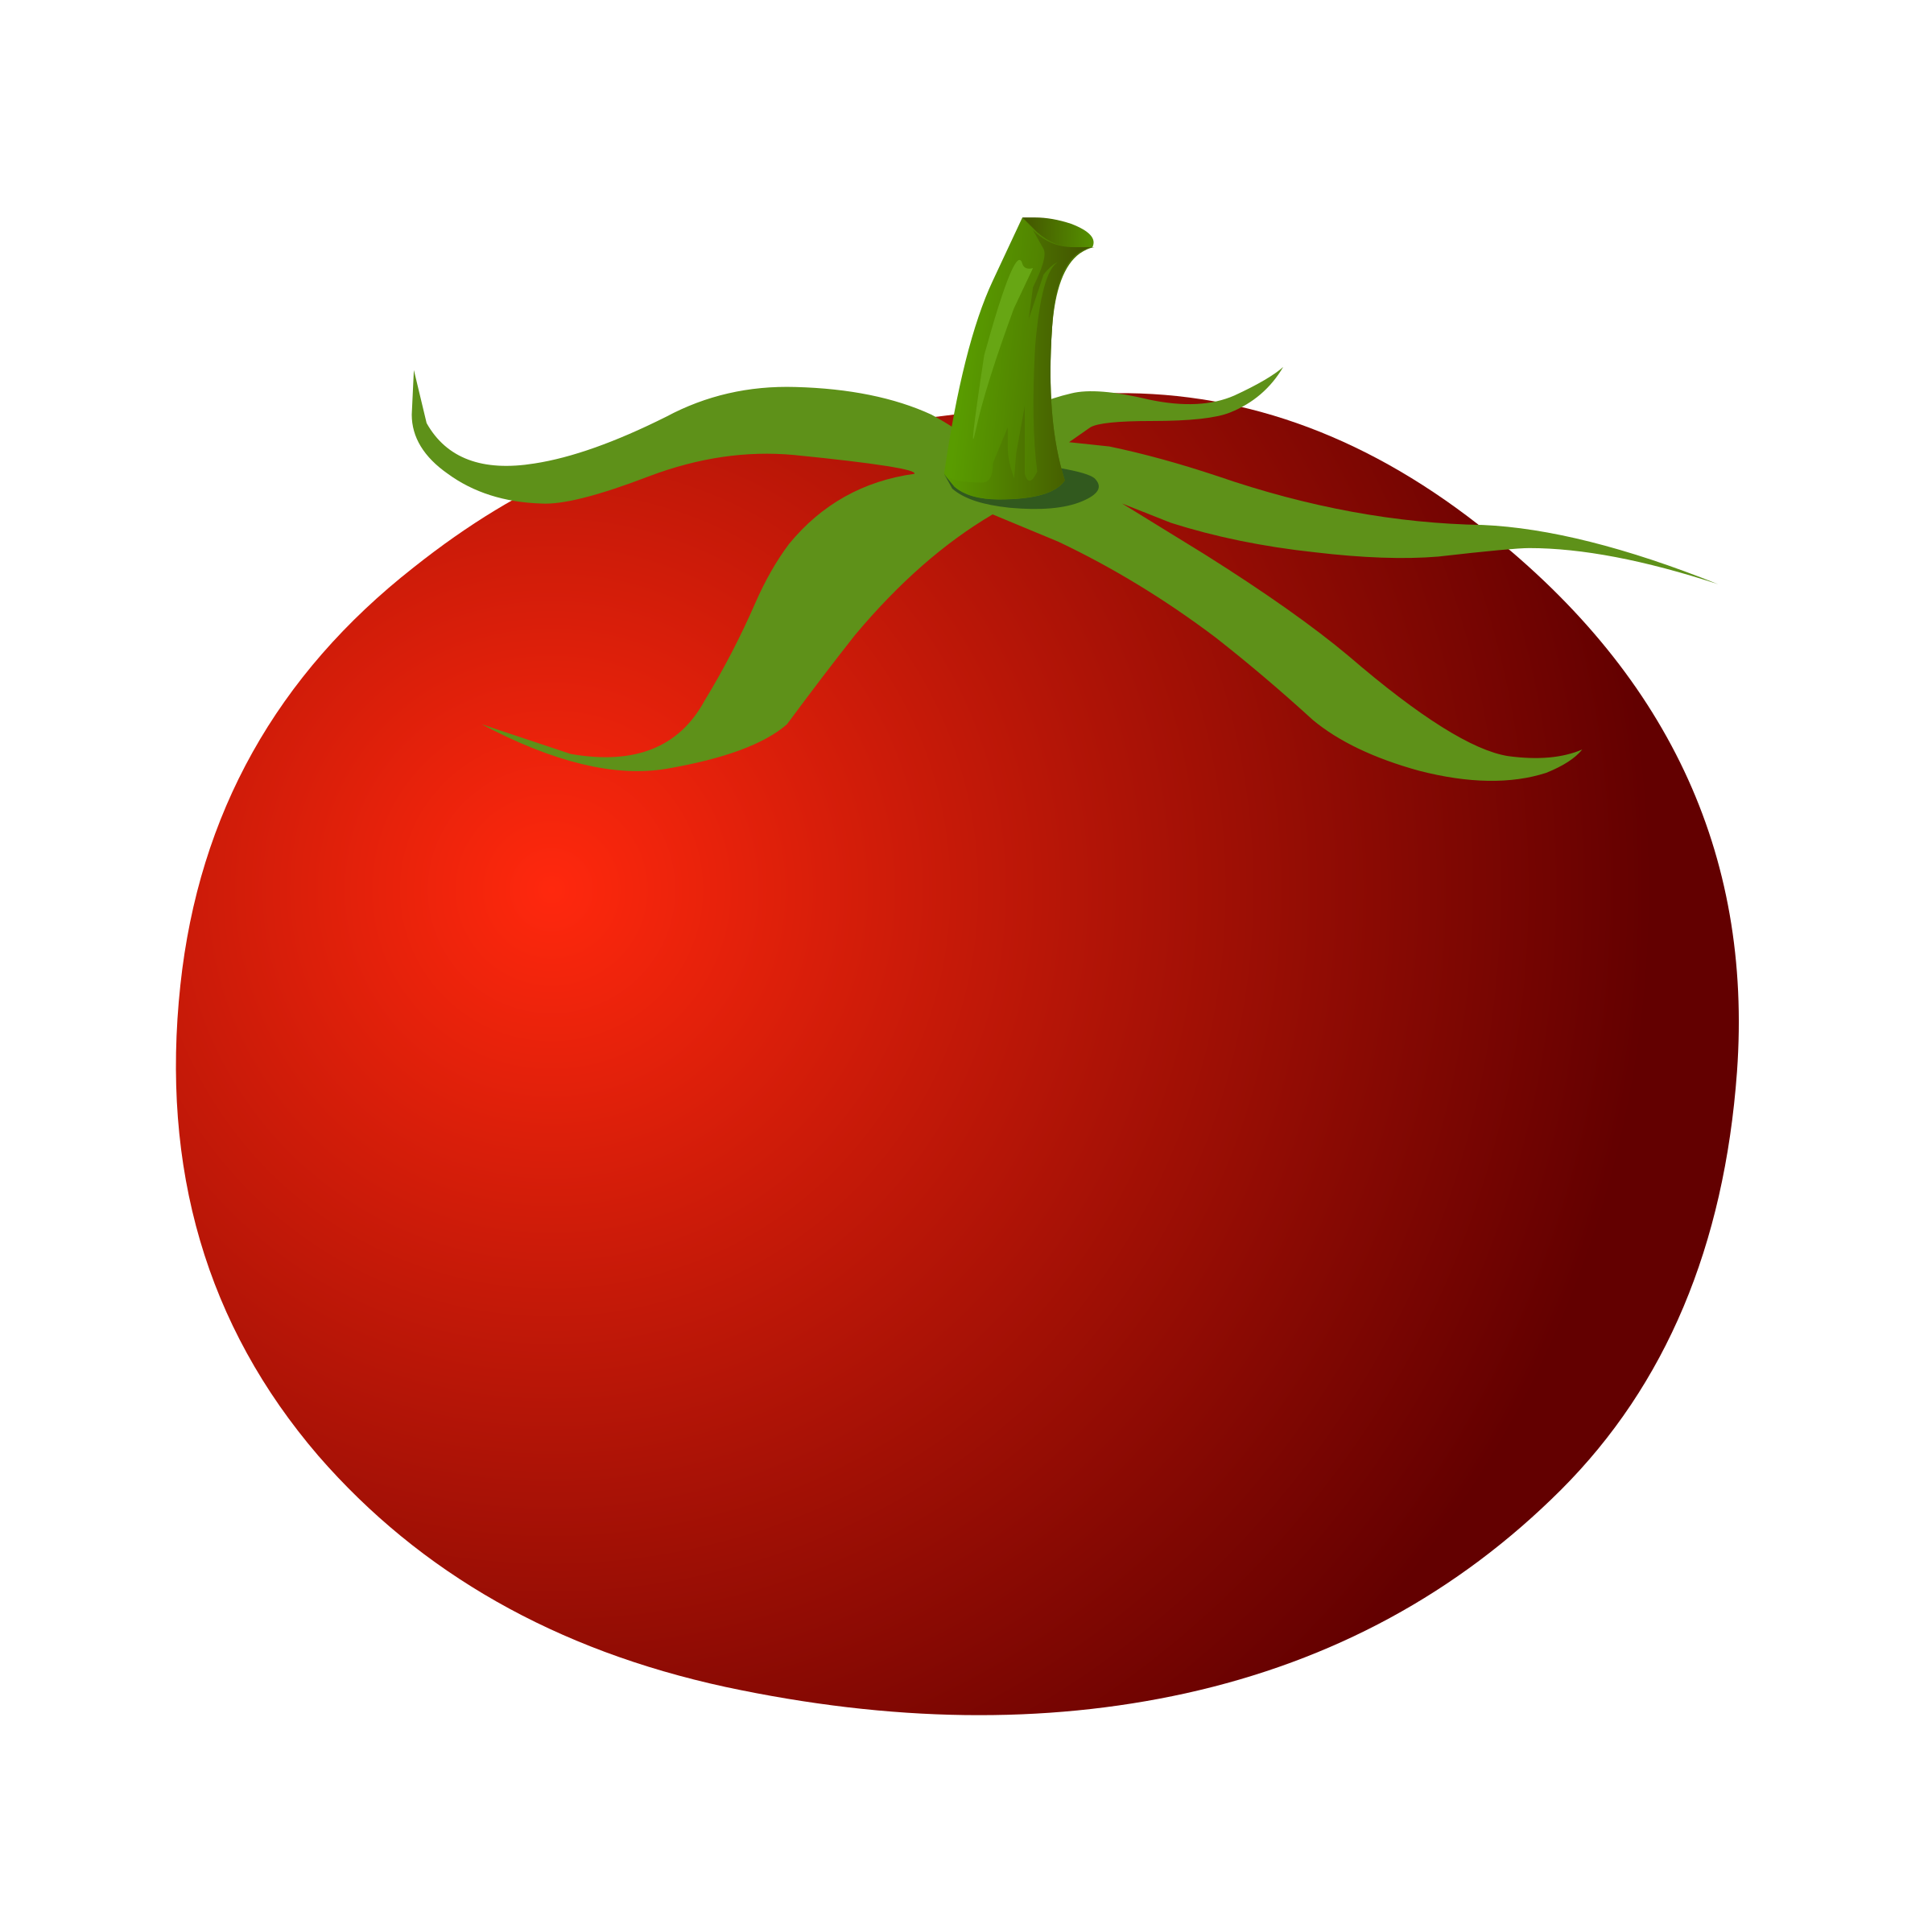 Eye clipart tomato. Tomatoes clip art free